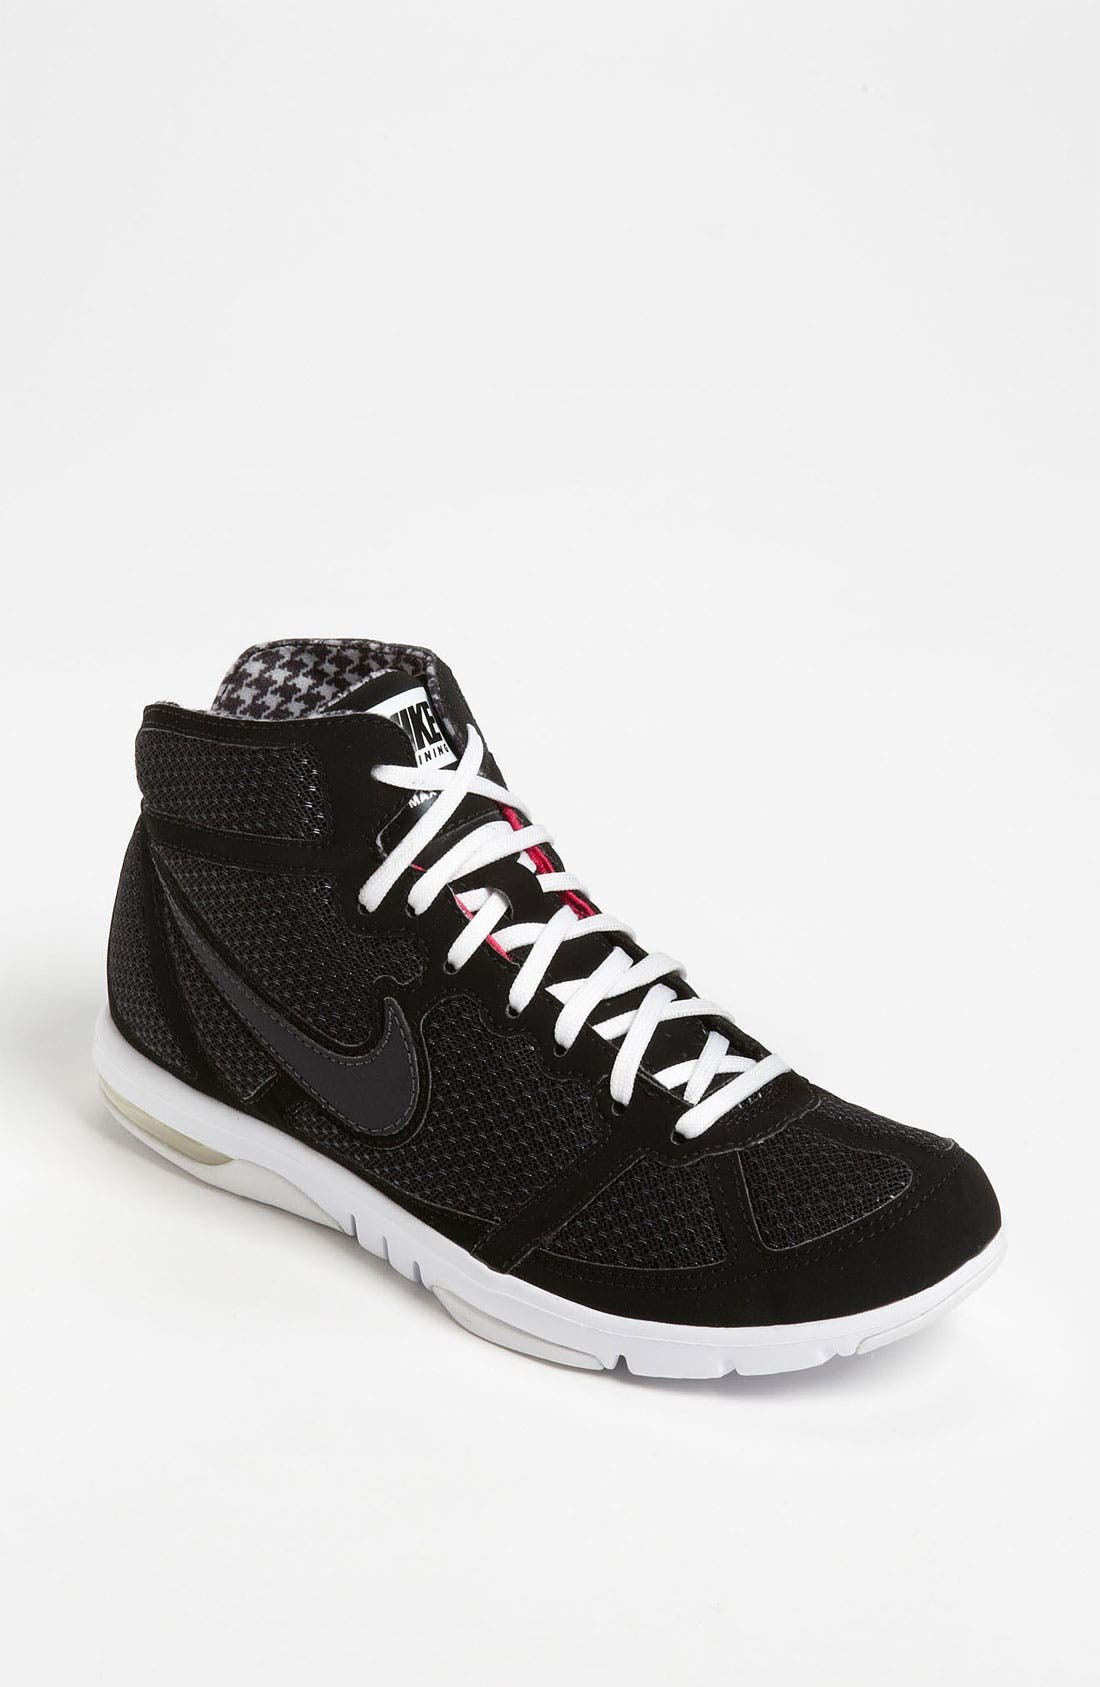 Alternate Image 1 Selected - Nike 'Air Max S2S Mid' Training Shoe (Women)